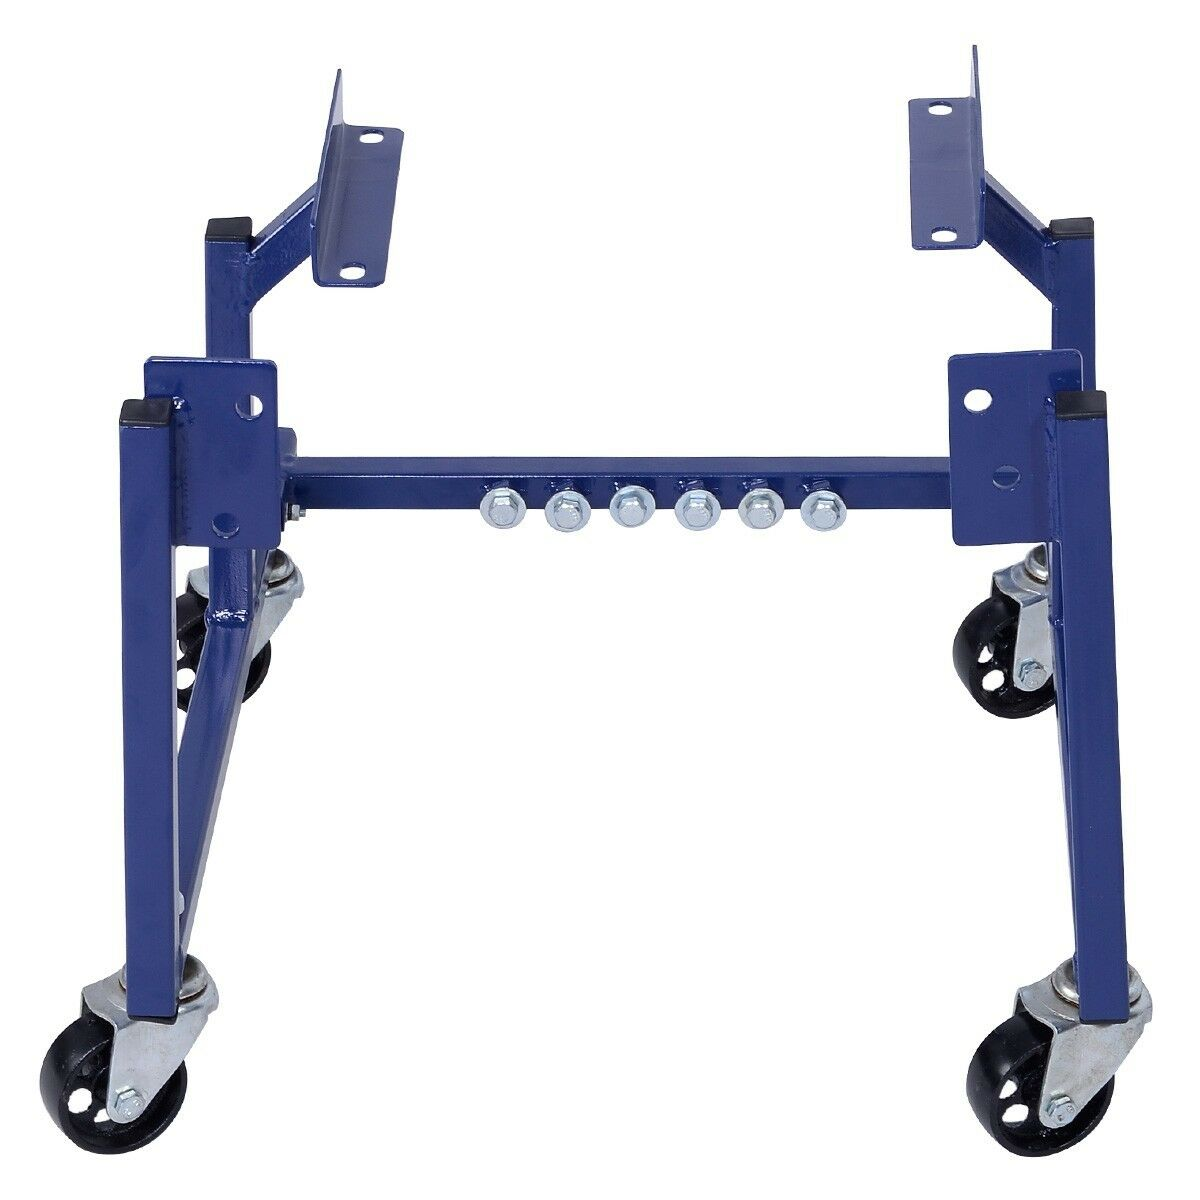 New 1000lb Auto Engine Cradle Stand Ford Dolly Mover Repair Rebuild W/wheels - New for sale in ...